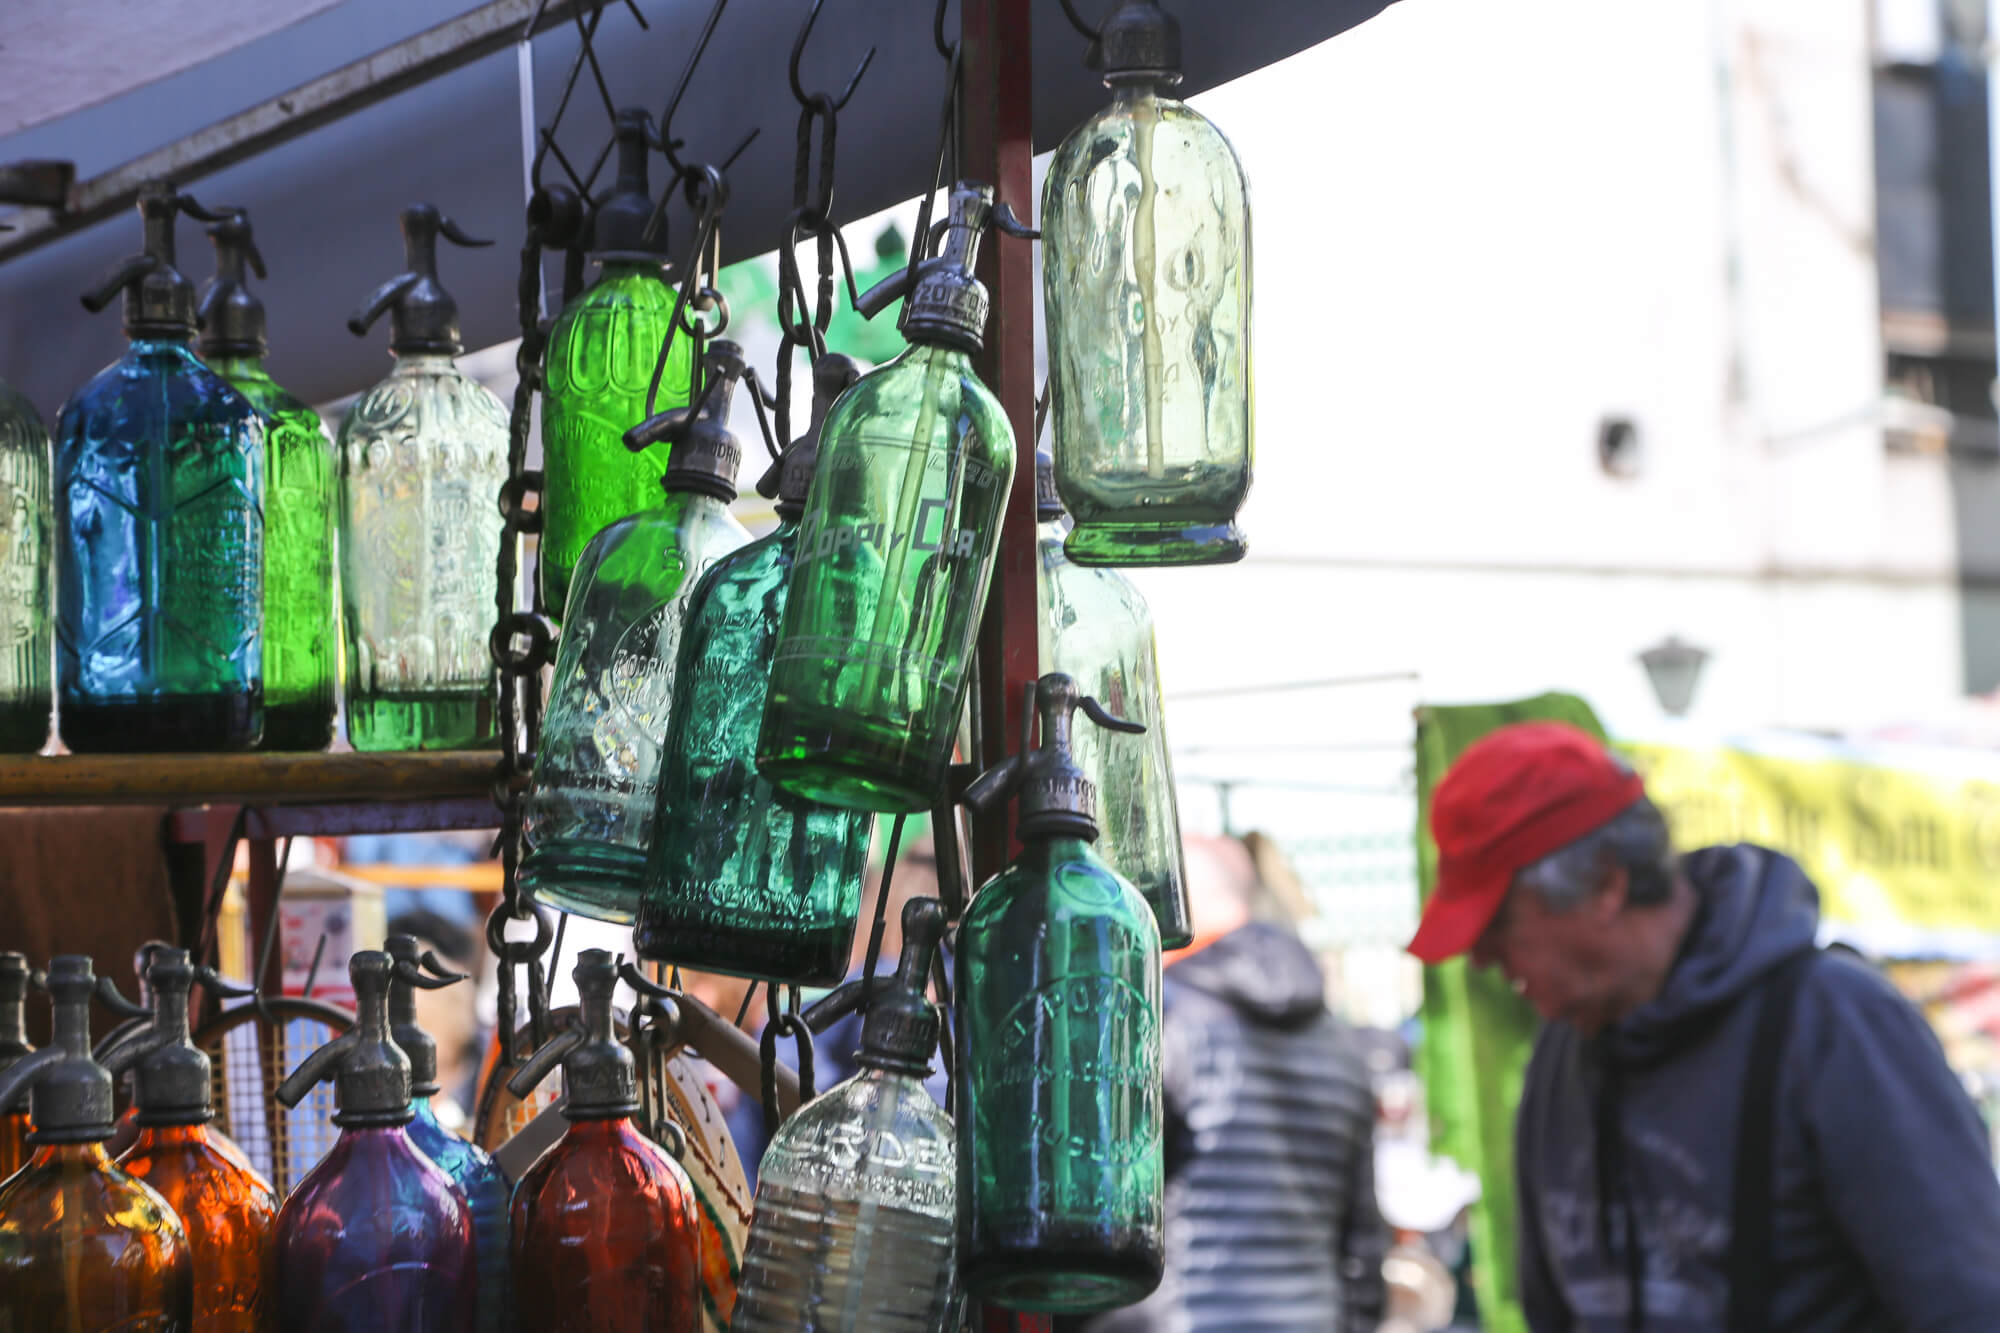 Best Buenos Aires Souvenirs like these green antique soda bottles